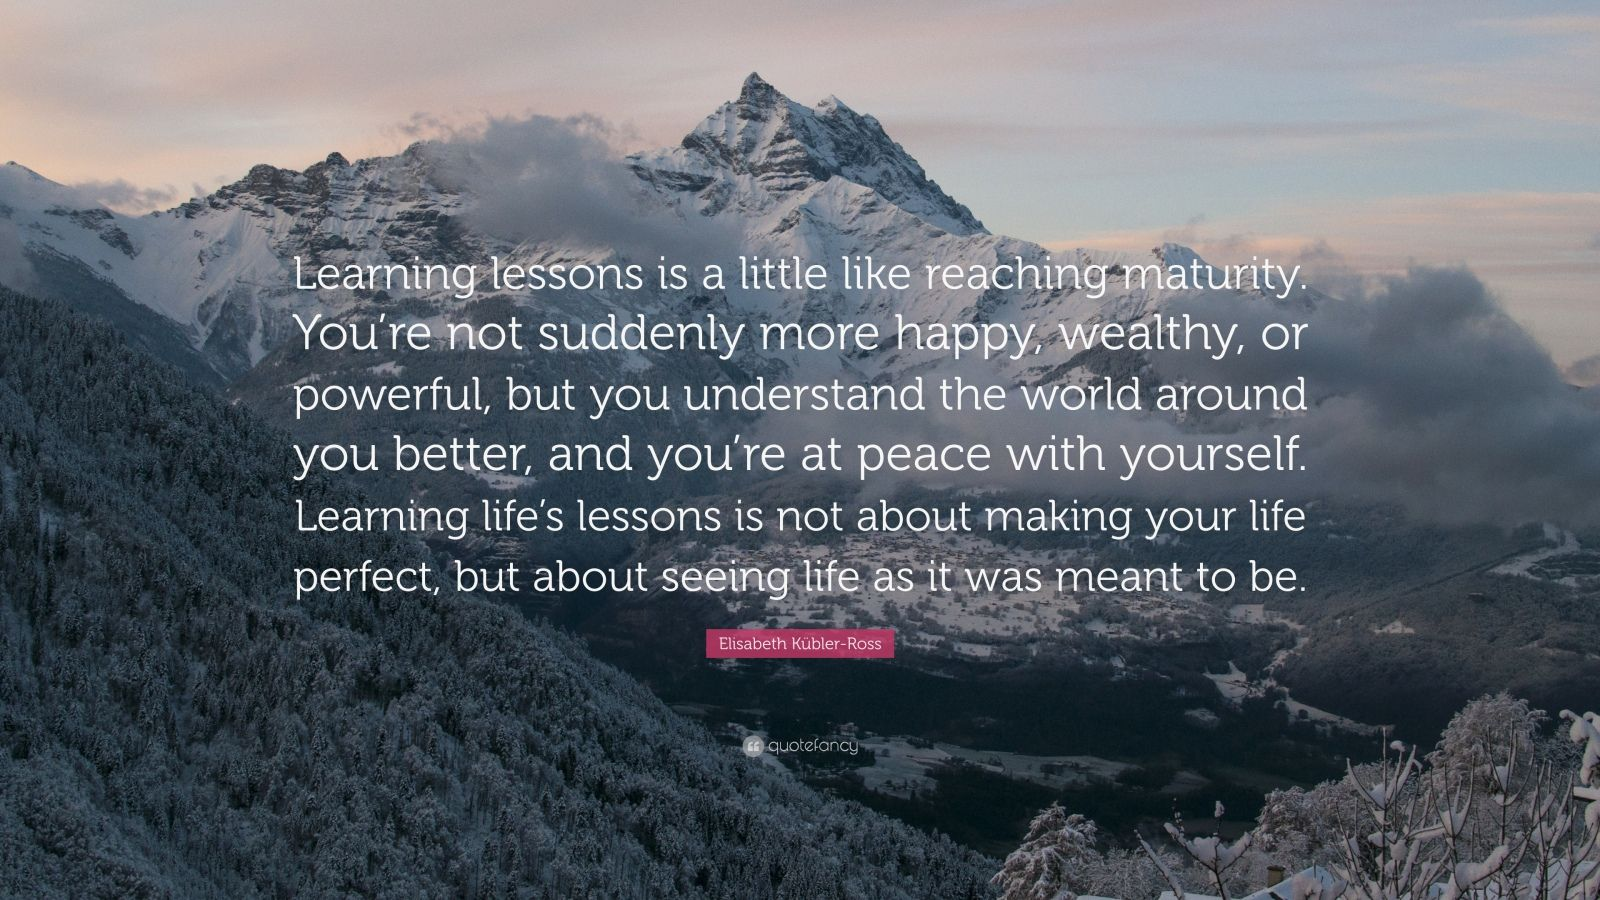 """Elisabeth Kübler-Ross Quote: """"Learning lessons is a little like reaching maturity. You're not suddenly more happy, wealthy, or powerful, but you understand the world around you better, and you're at peace with yourself. Learning life's lessons is not about making your life perfect, but about seeing life as it was meant to be."""""""